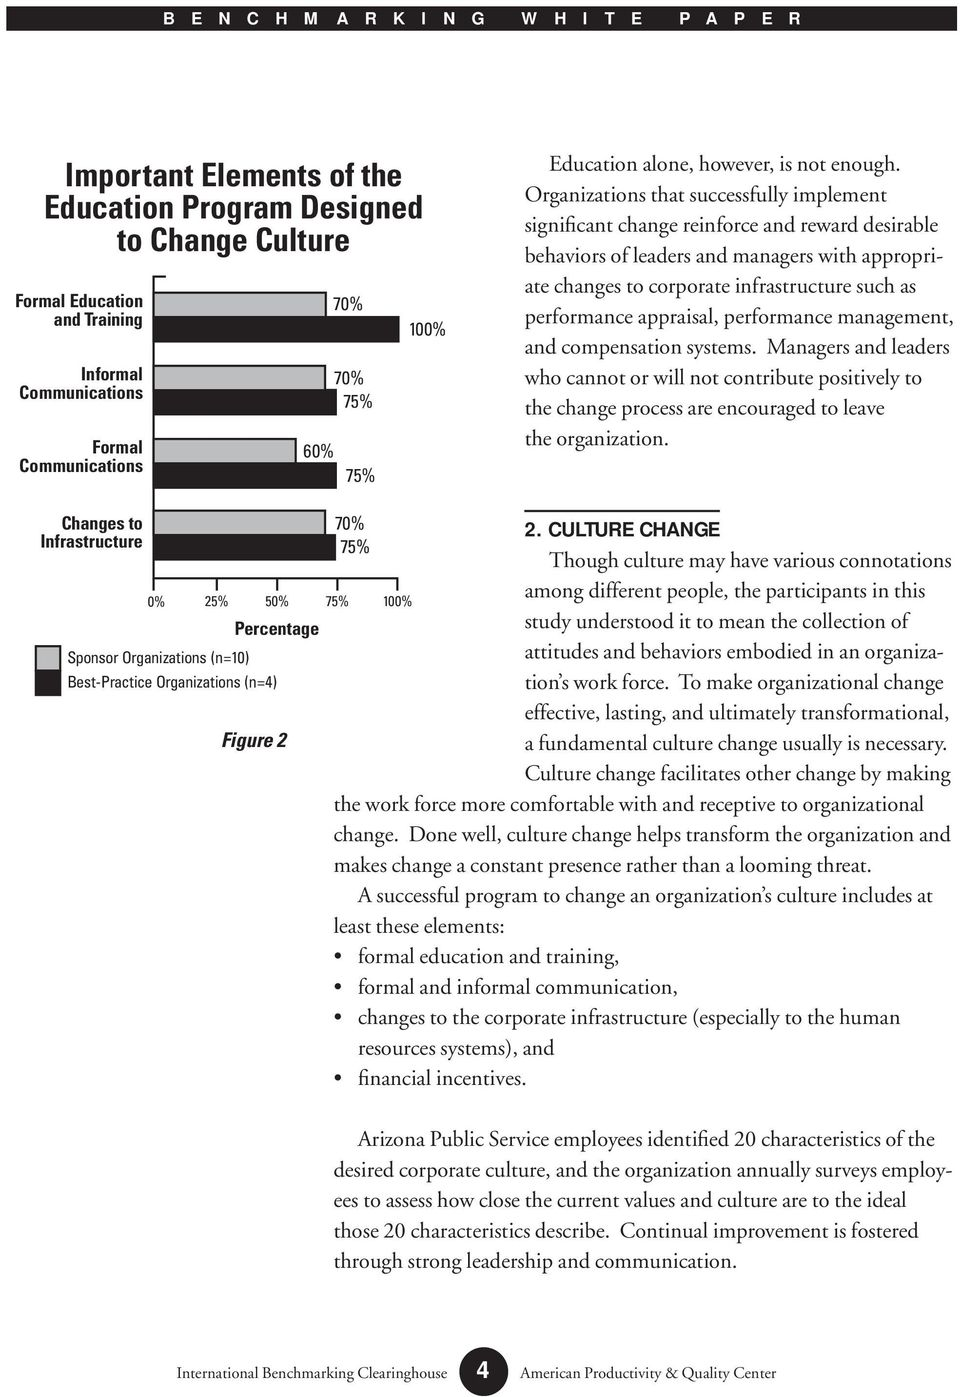 Organizations that successfully implement significant change reinforce and reward desirable behaviors of leaders and managers with appropriate changes to corporate infrastructure such as performance